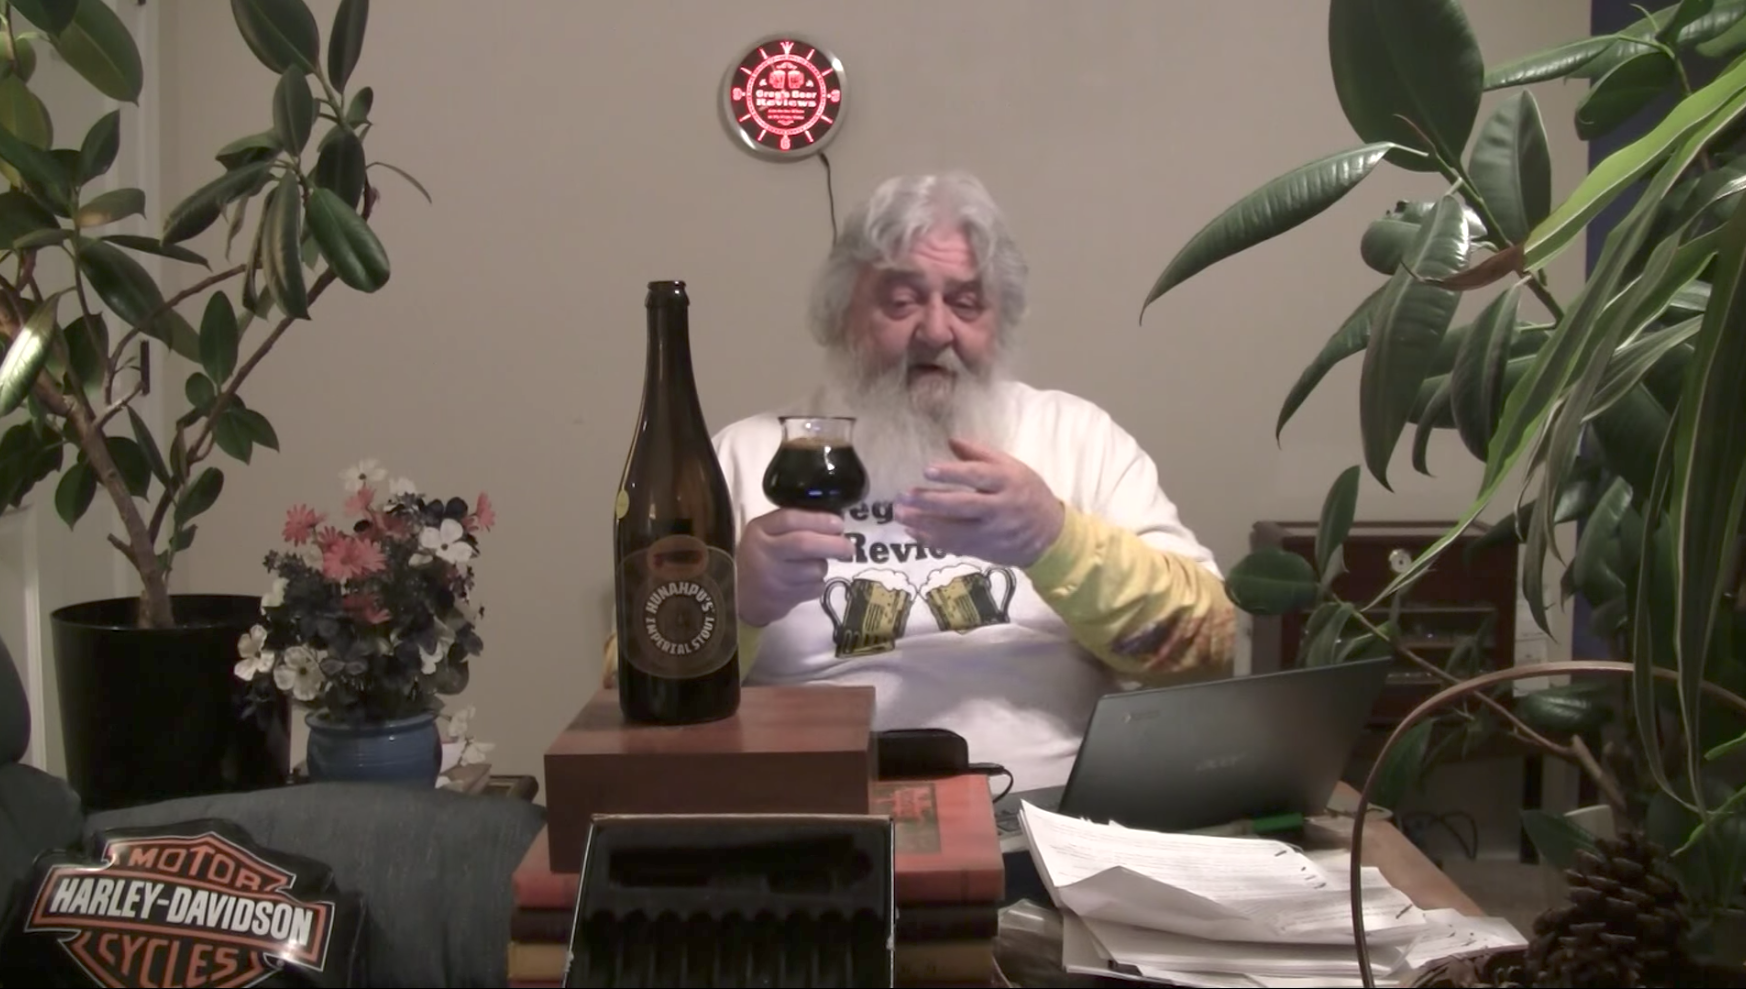 Welcome to BrewTube: Inside the World of YouTube Beer Reviewers